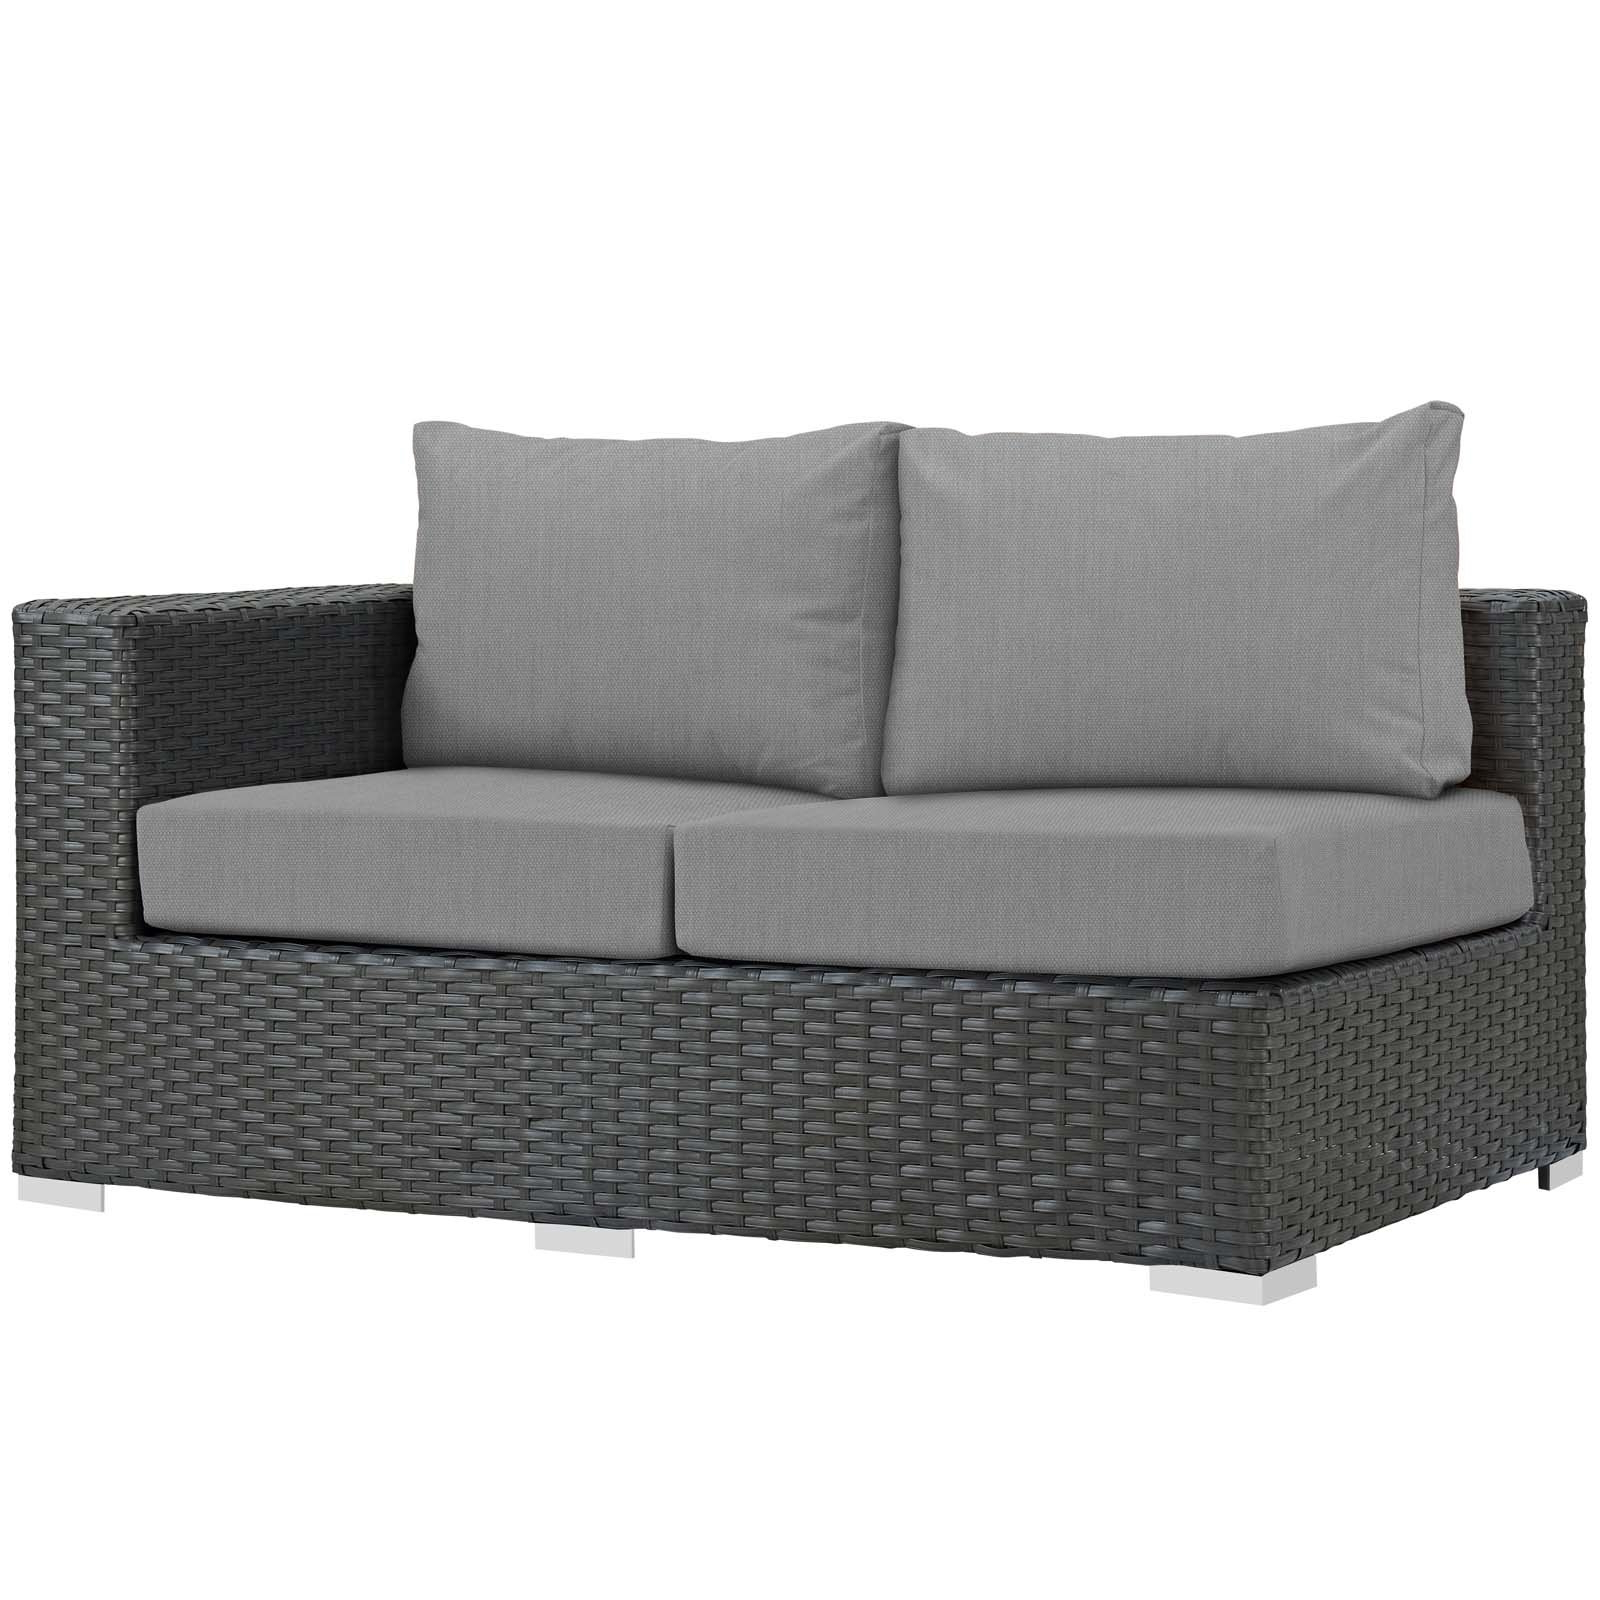 Tripp Right Arm Loveseat Sectional Piece With Cushions With Regard To Most Up To Date Grosvenor Bamboo Patio Daybeds With Cushions (View 15 of 20)